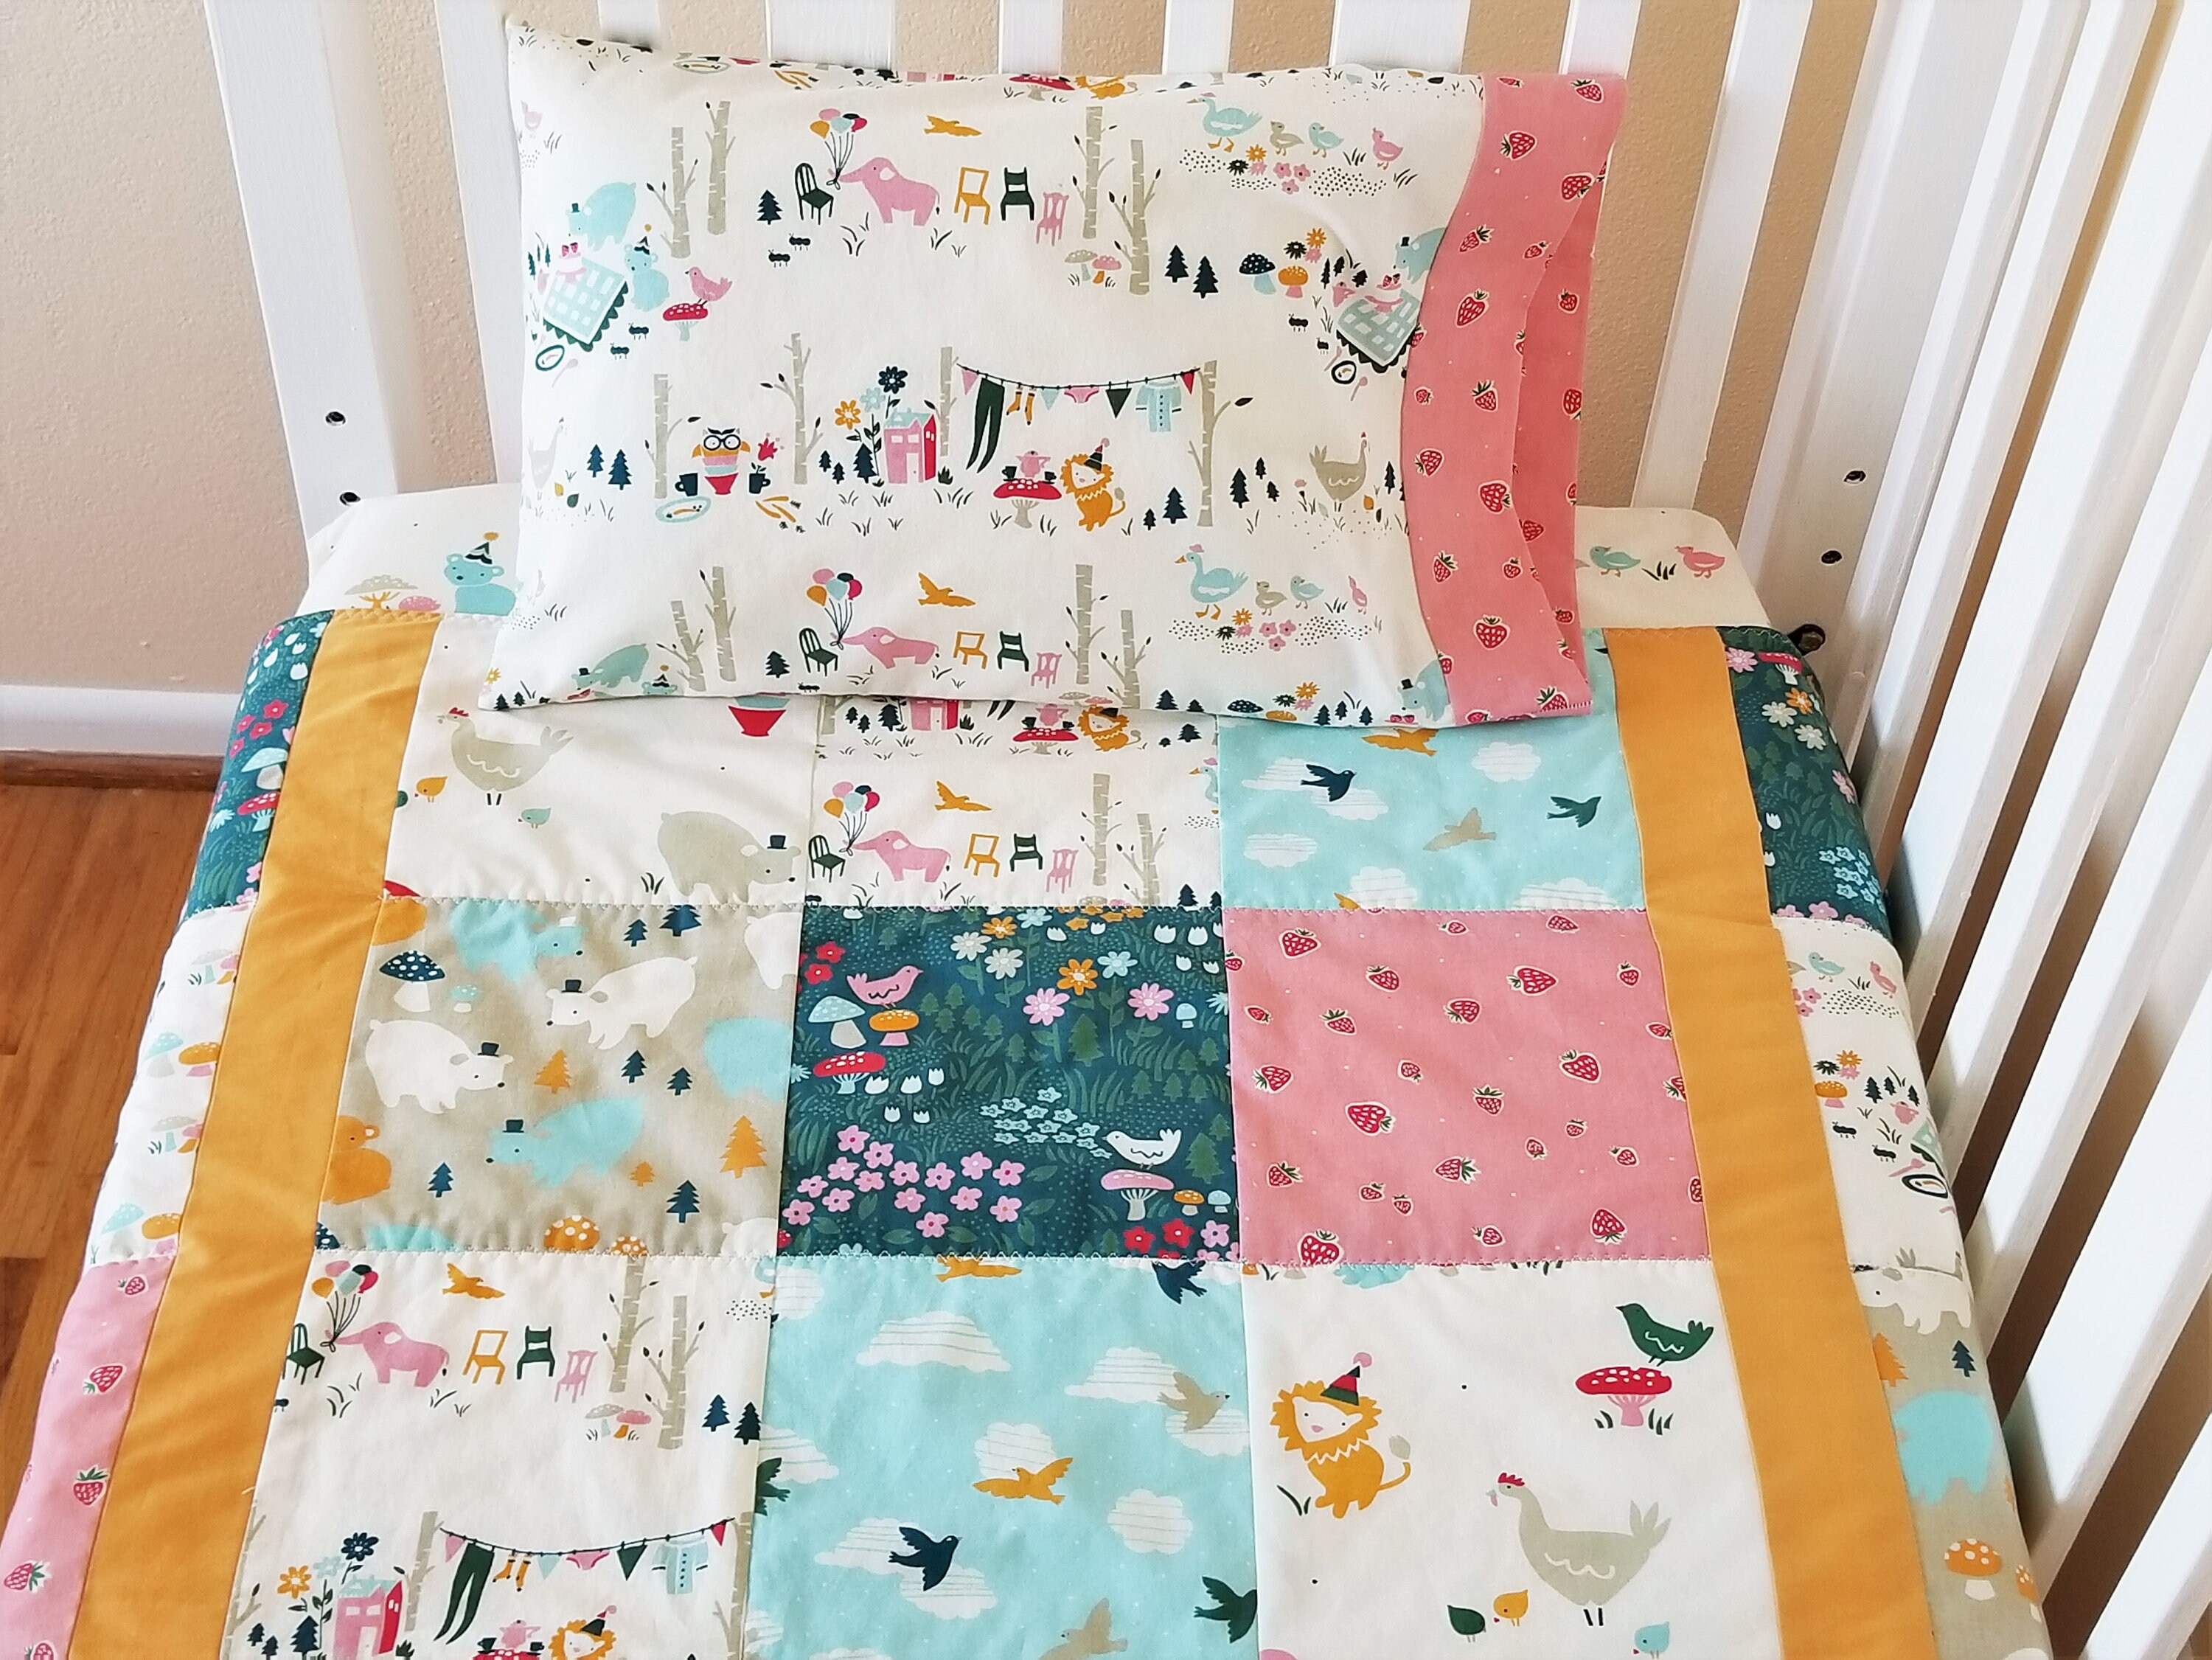 Full Crib Bedding Sets Organic Crib Bedding Set Girl Organic Baby Bedding Set Crib Set